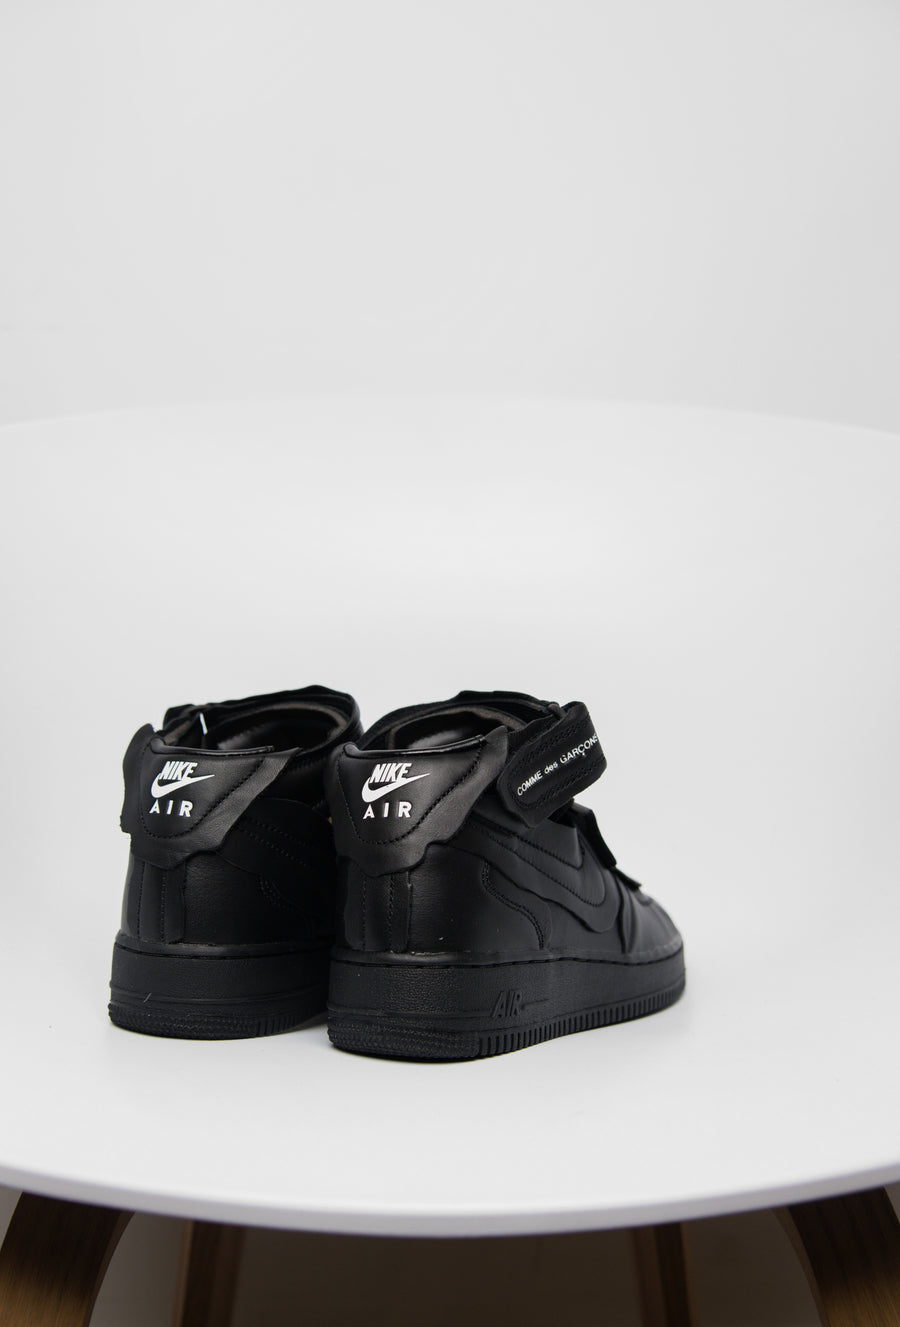 CDG Air Force 1 Mid Black/Sail/Silver DC3601-001